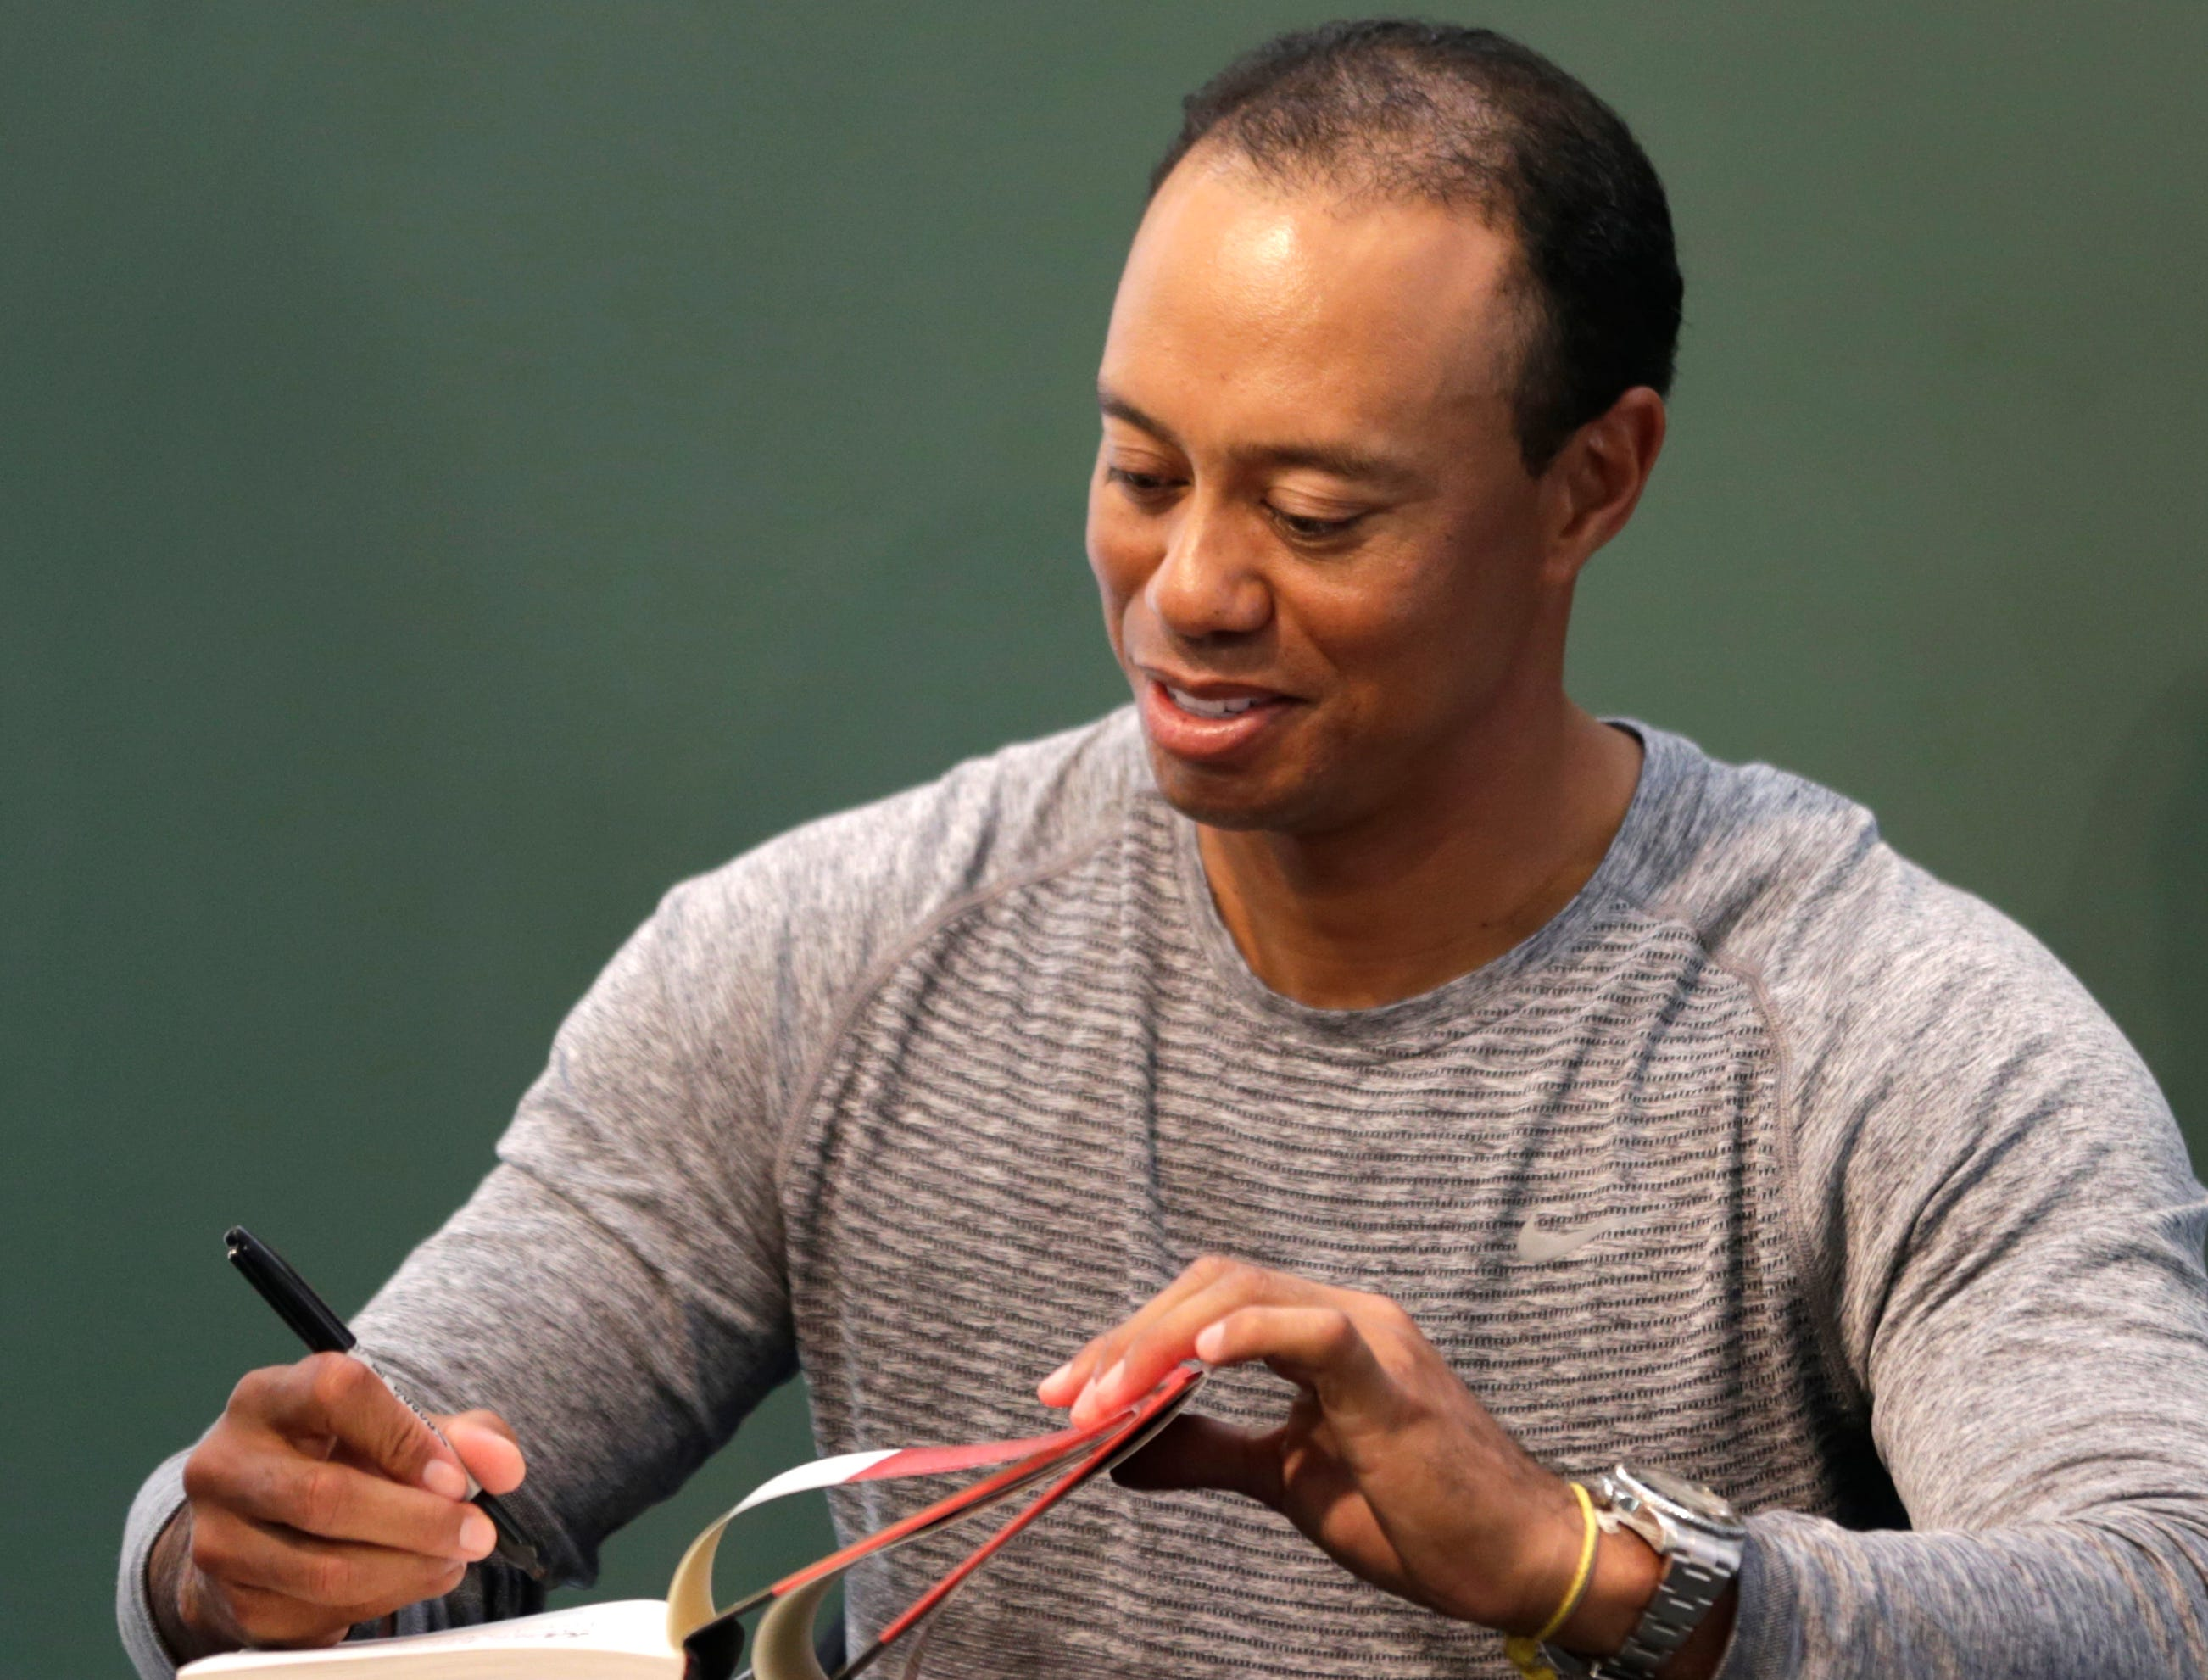 In April 2017, Woods has his fourth back surgery to fuse discs in his lower back. He would make only one PGA Tour start that season. Here he's shown signing copies of his new book in New York.